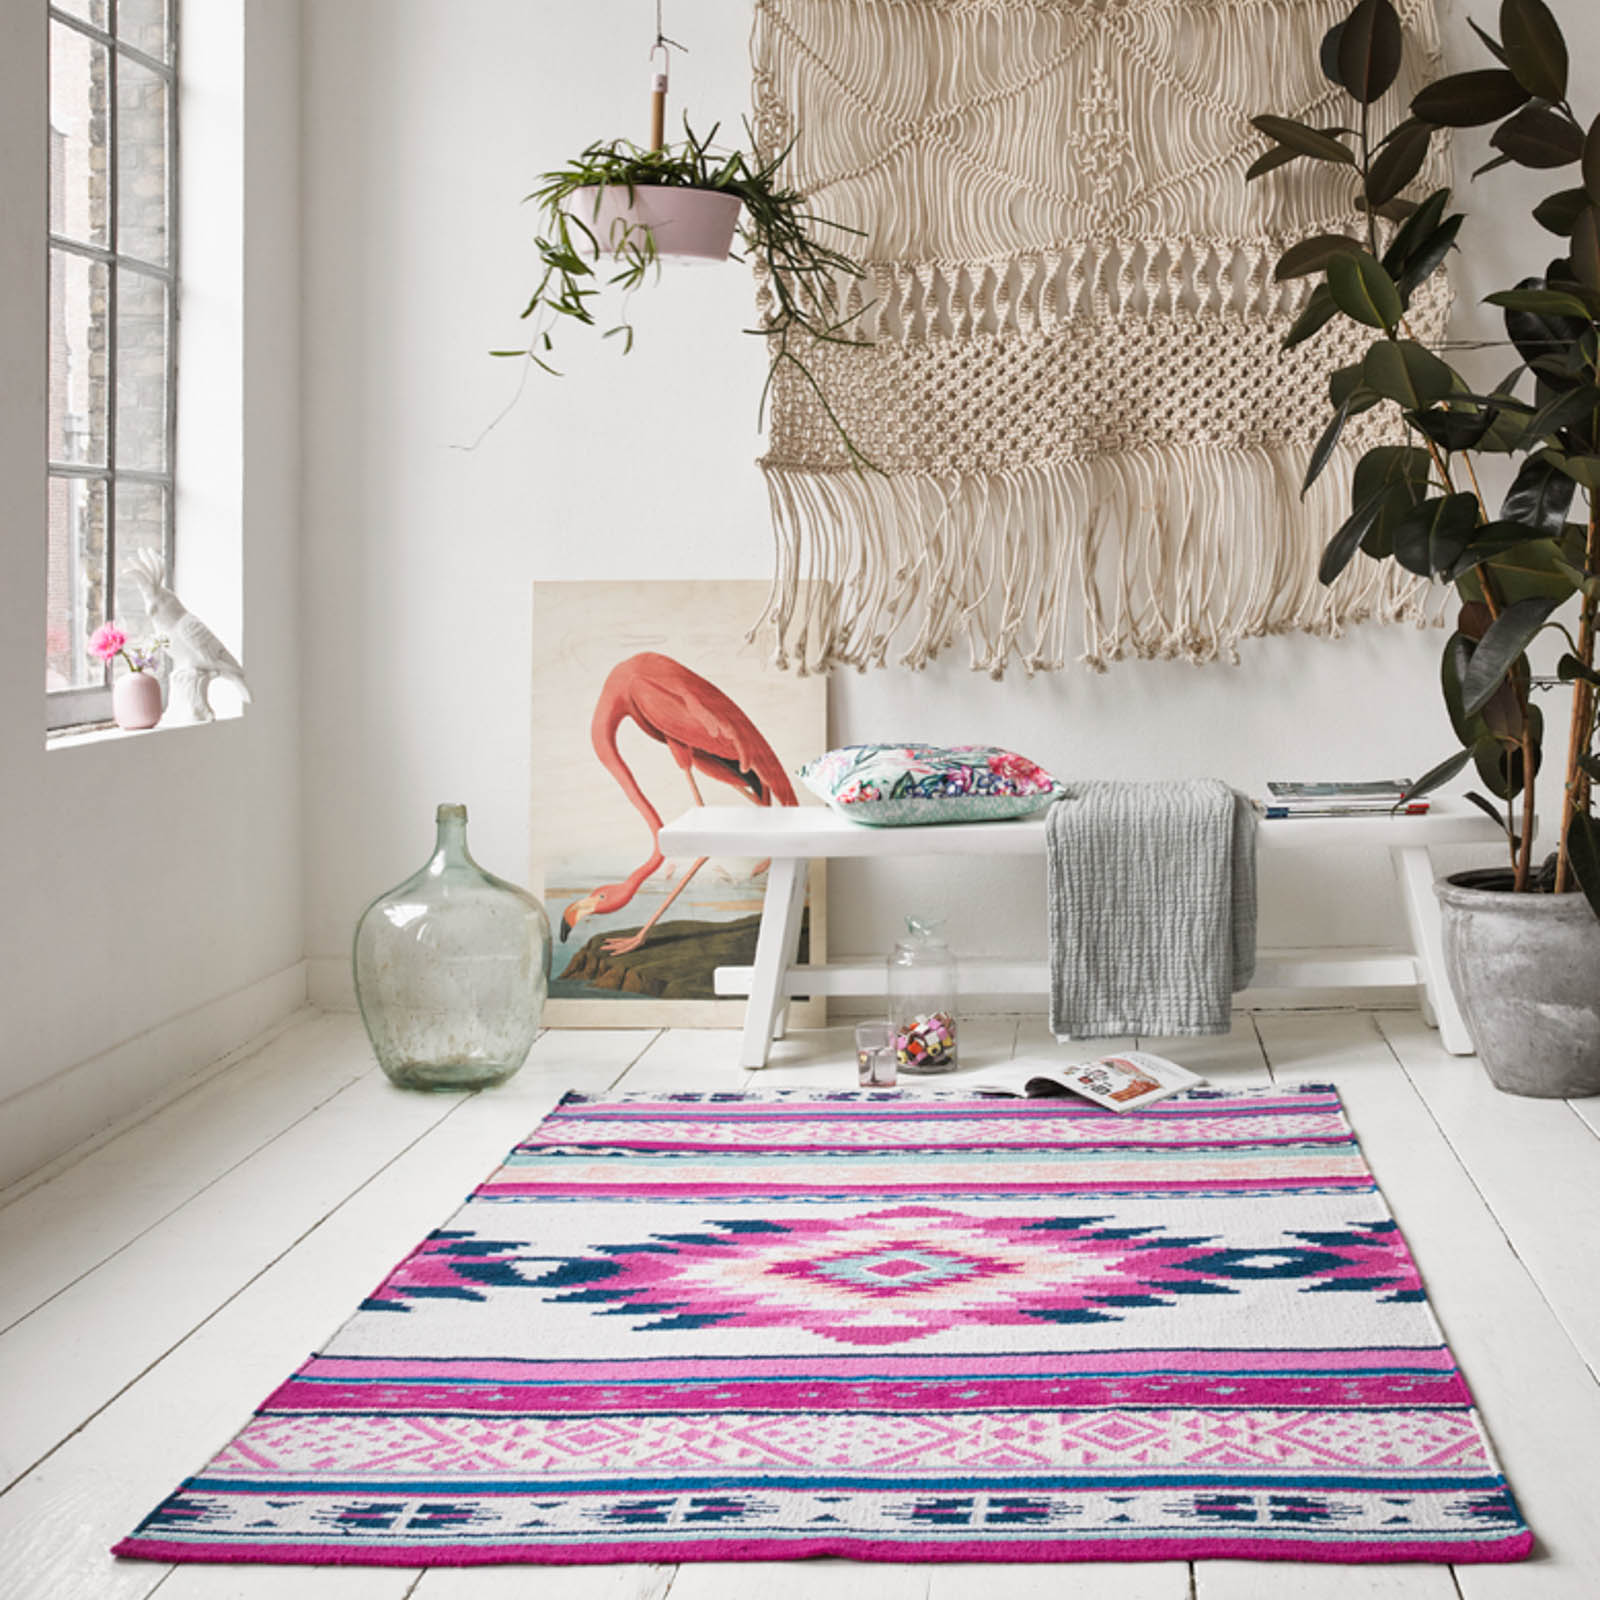 Turpan rugs 002 11 by Accessorize Home